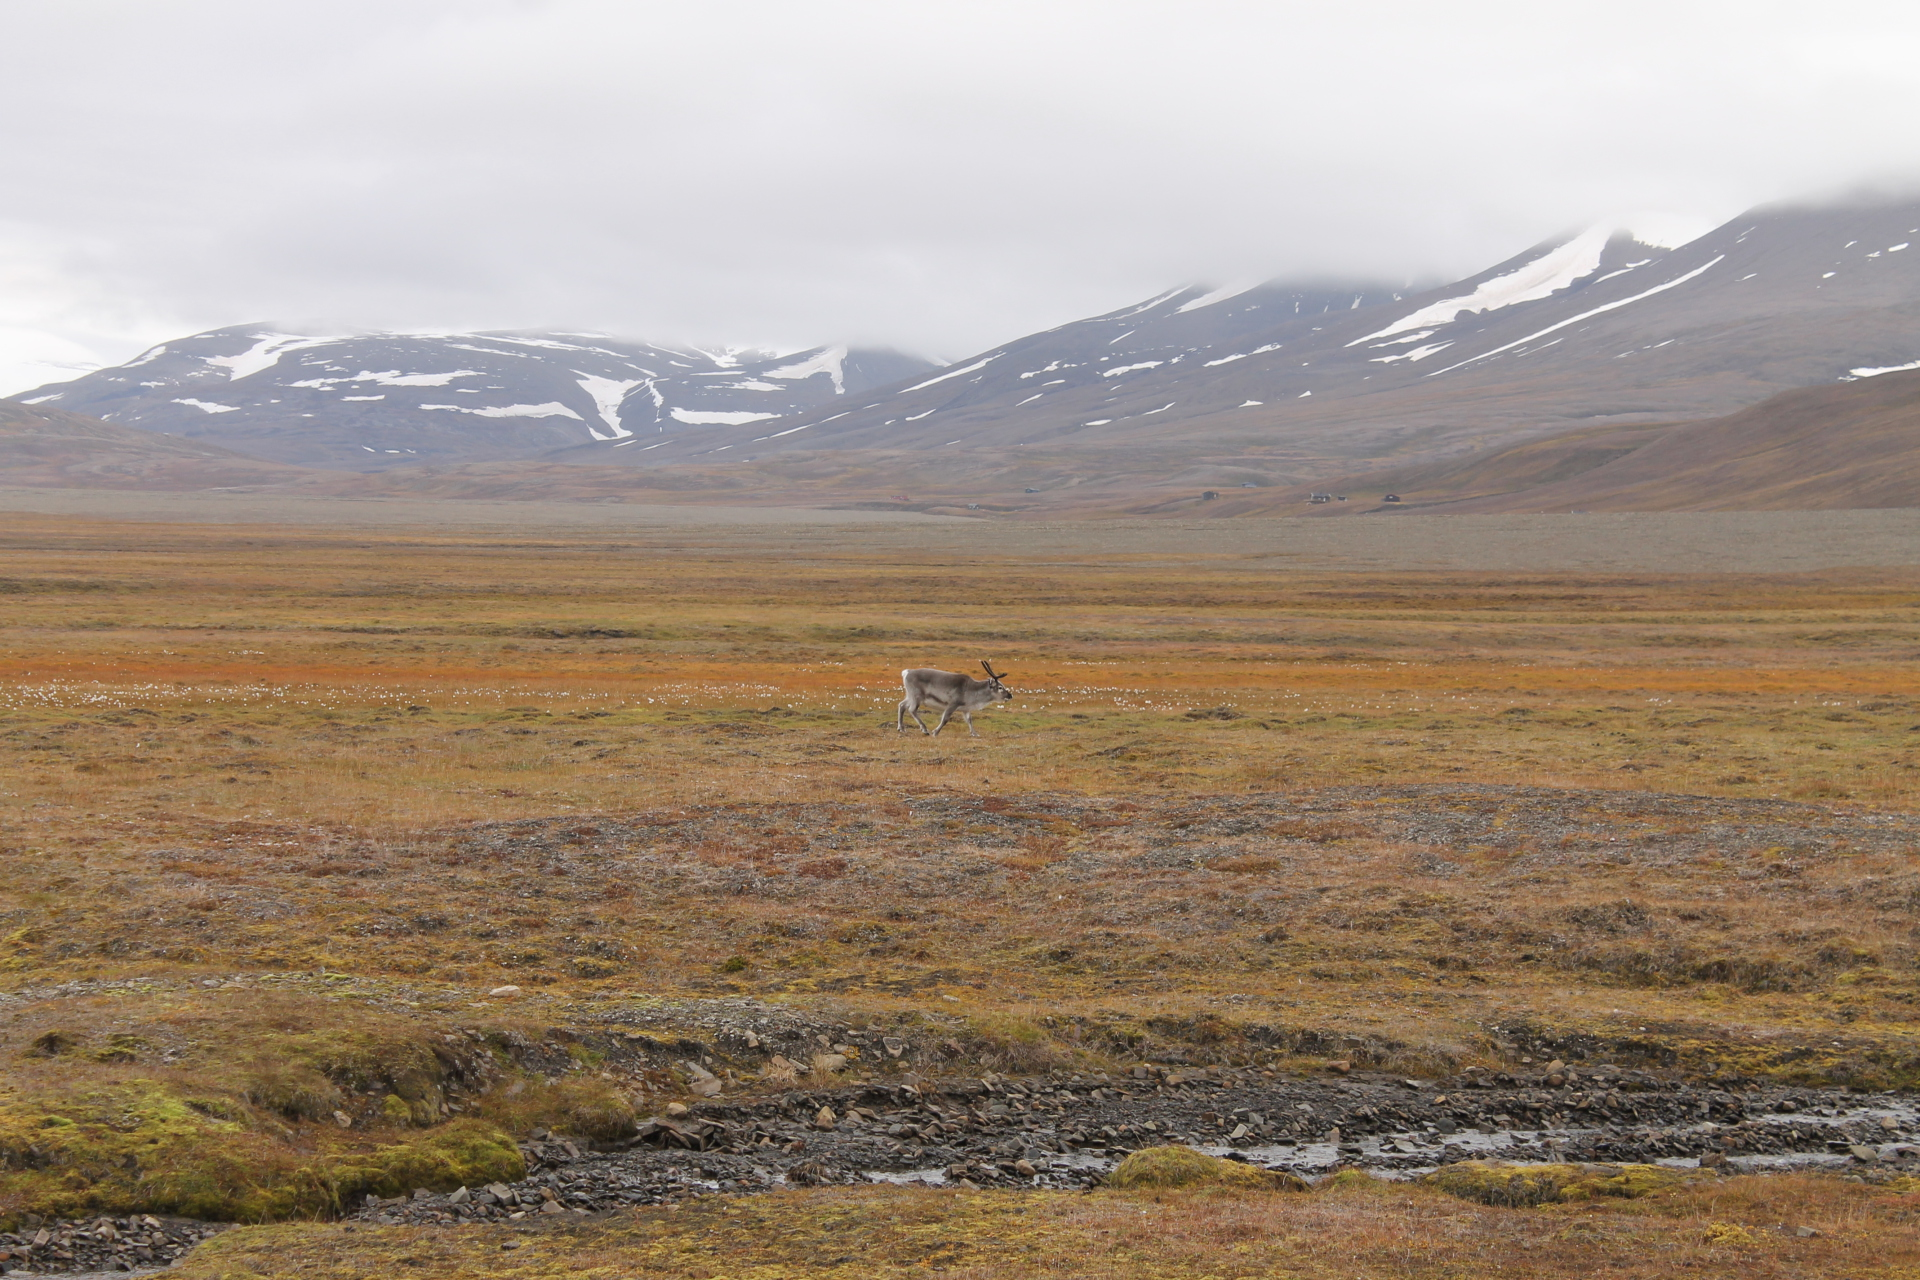 The Adventdalen Valley